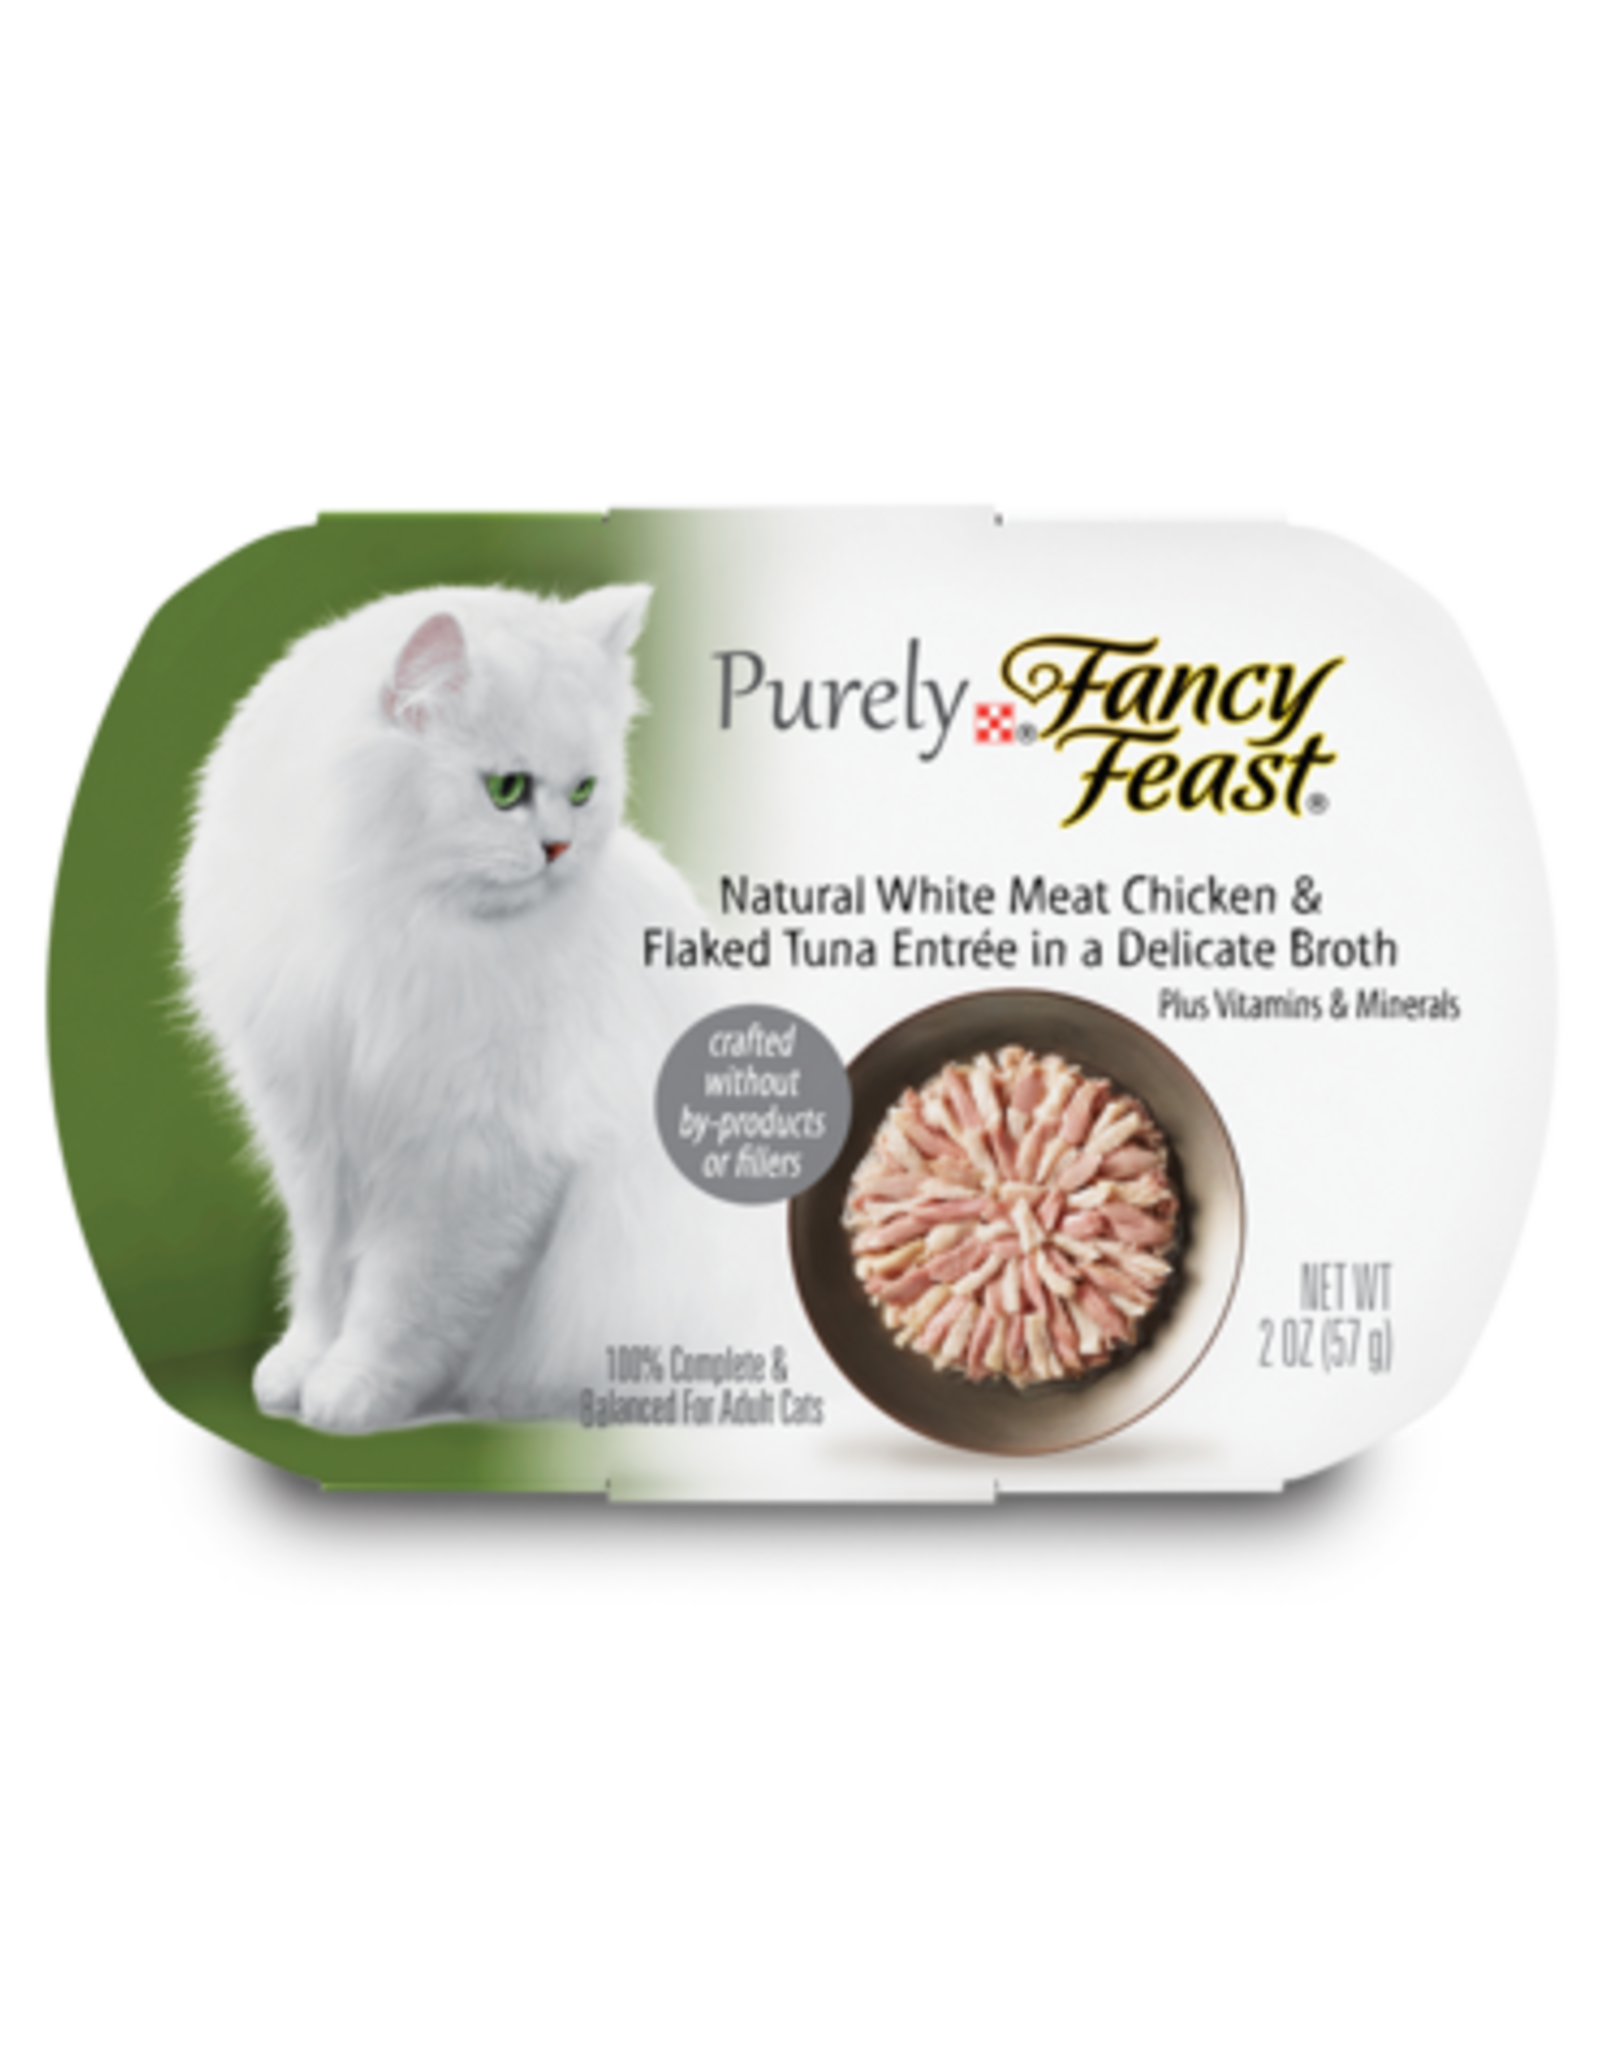 FANCY FEAST PURELY CHICKEN & TUNA IN BROTH 2OZ CASE OF 10